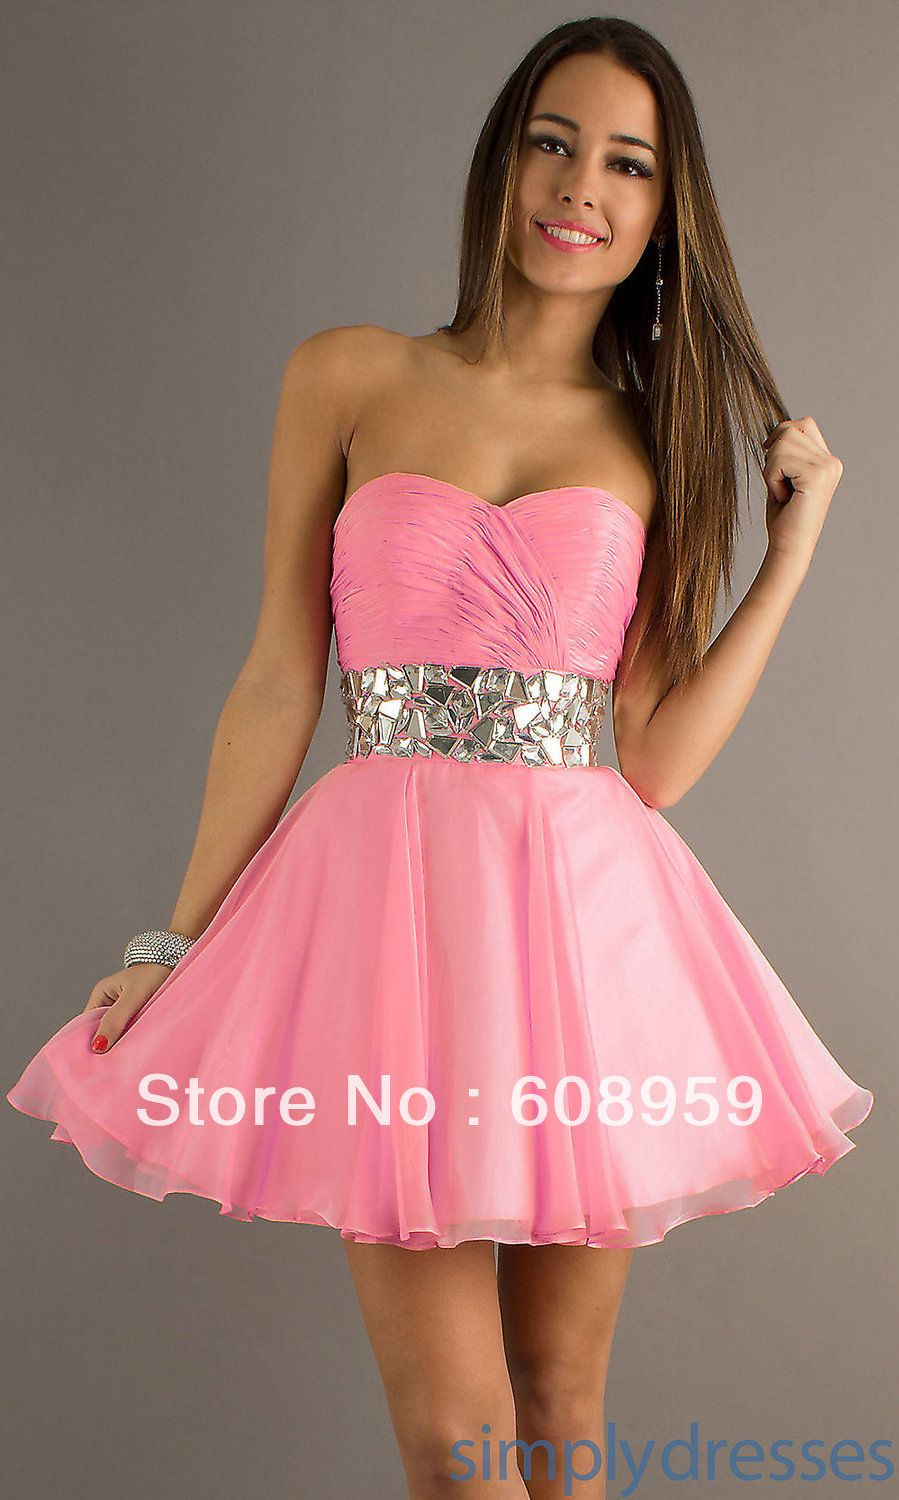 pink grad dress- not a big fan of the colour but love that style ...